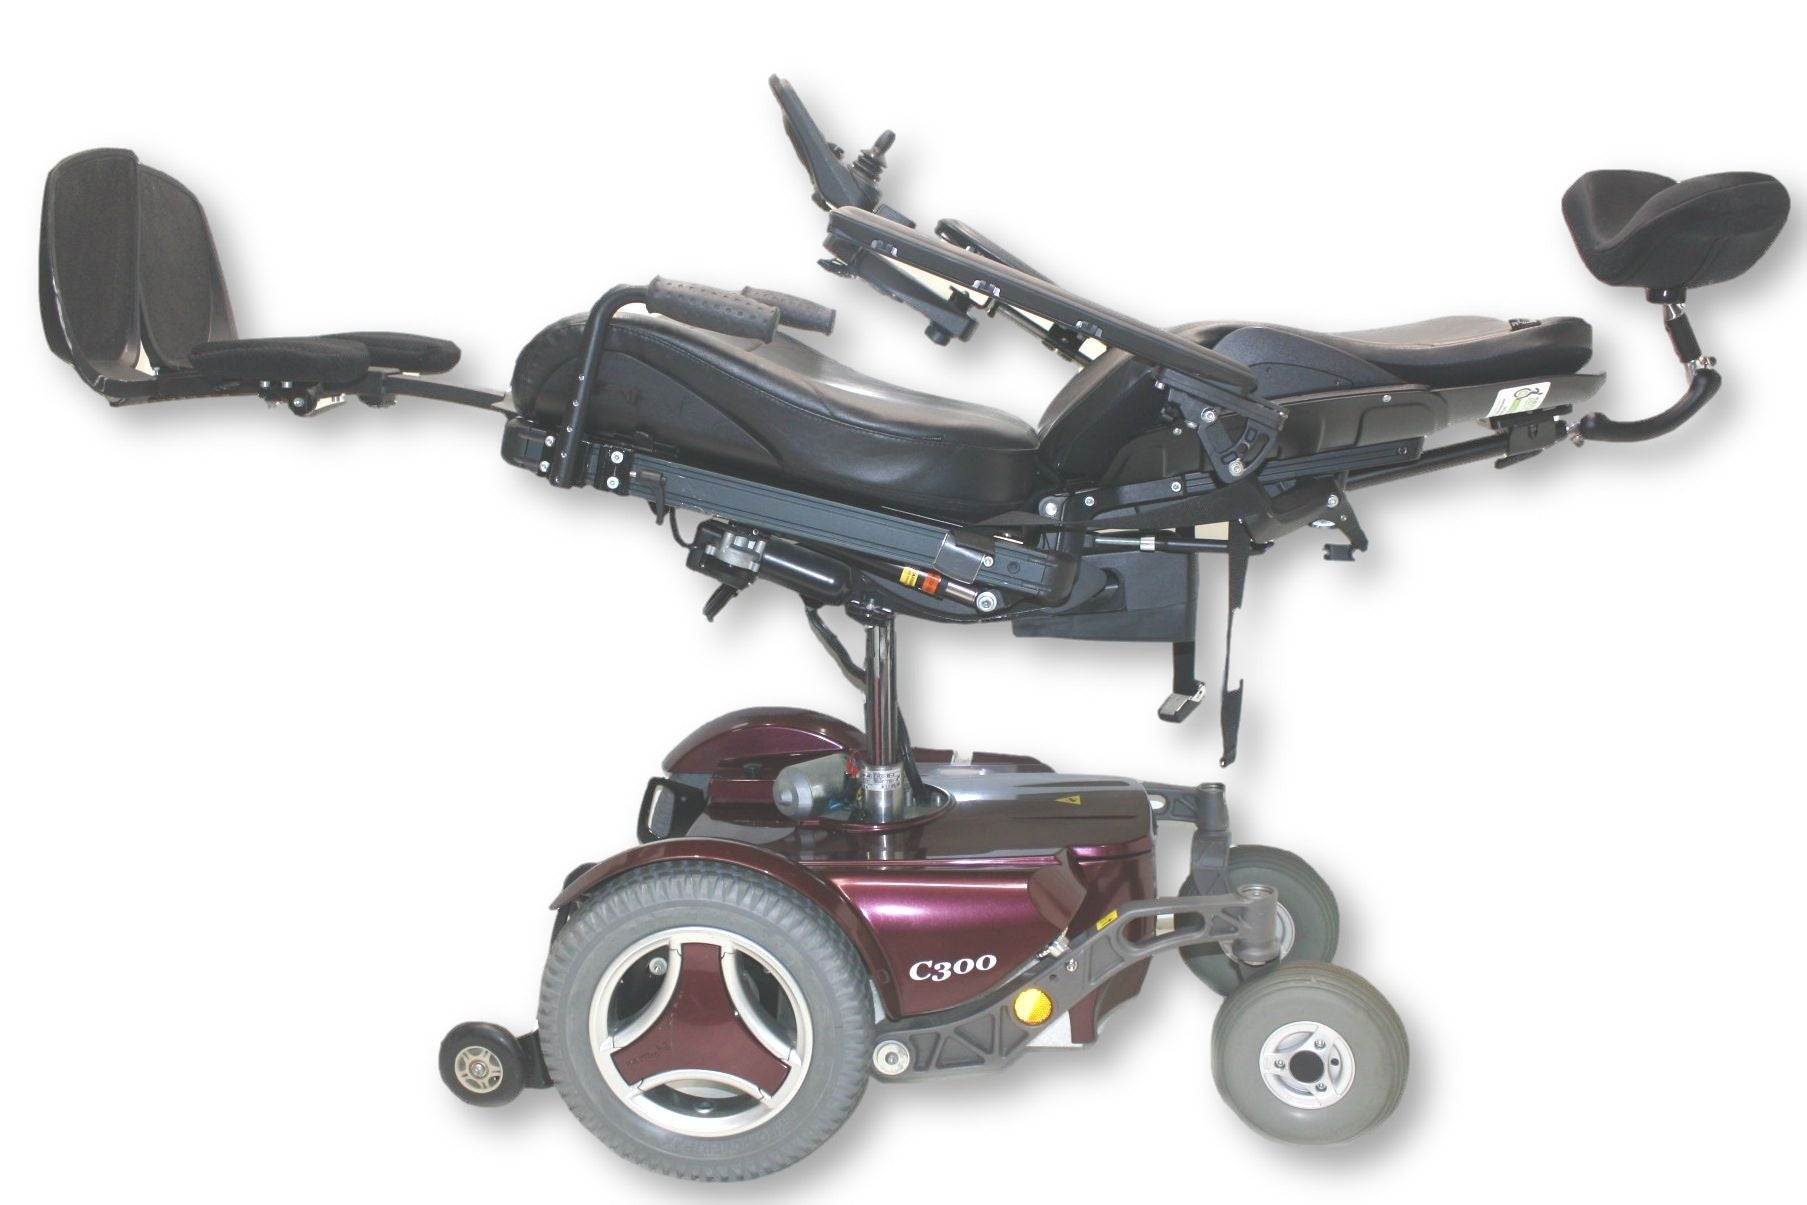 Permobil C300 Power Chair | Elevate, Tilt, Recline & Legs | 20